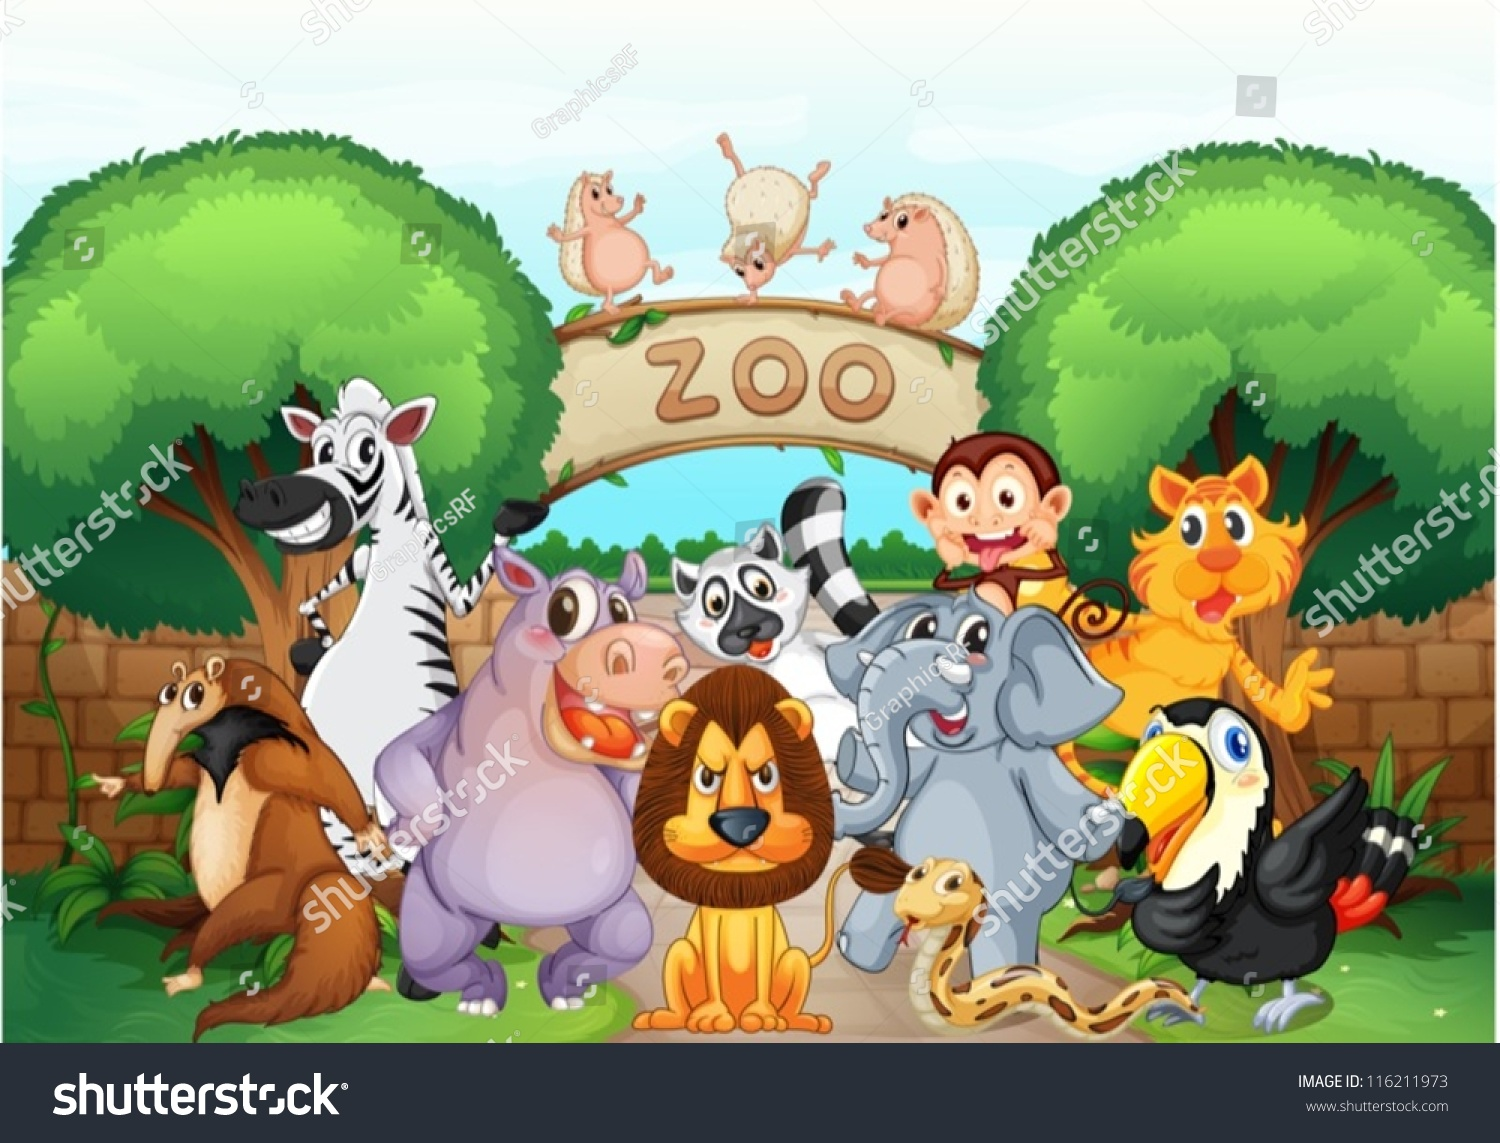 Visit To A Zoo Essay In Hindi